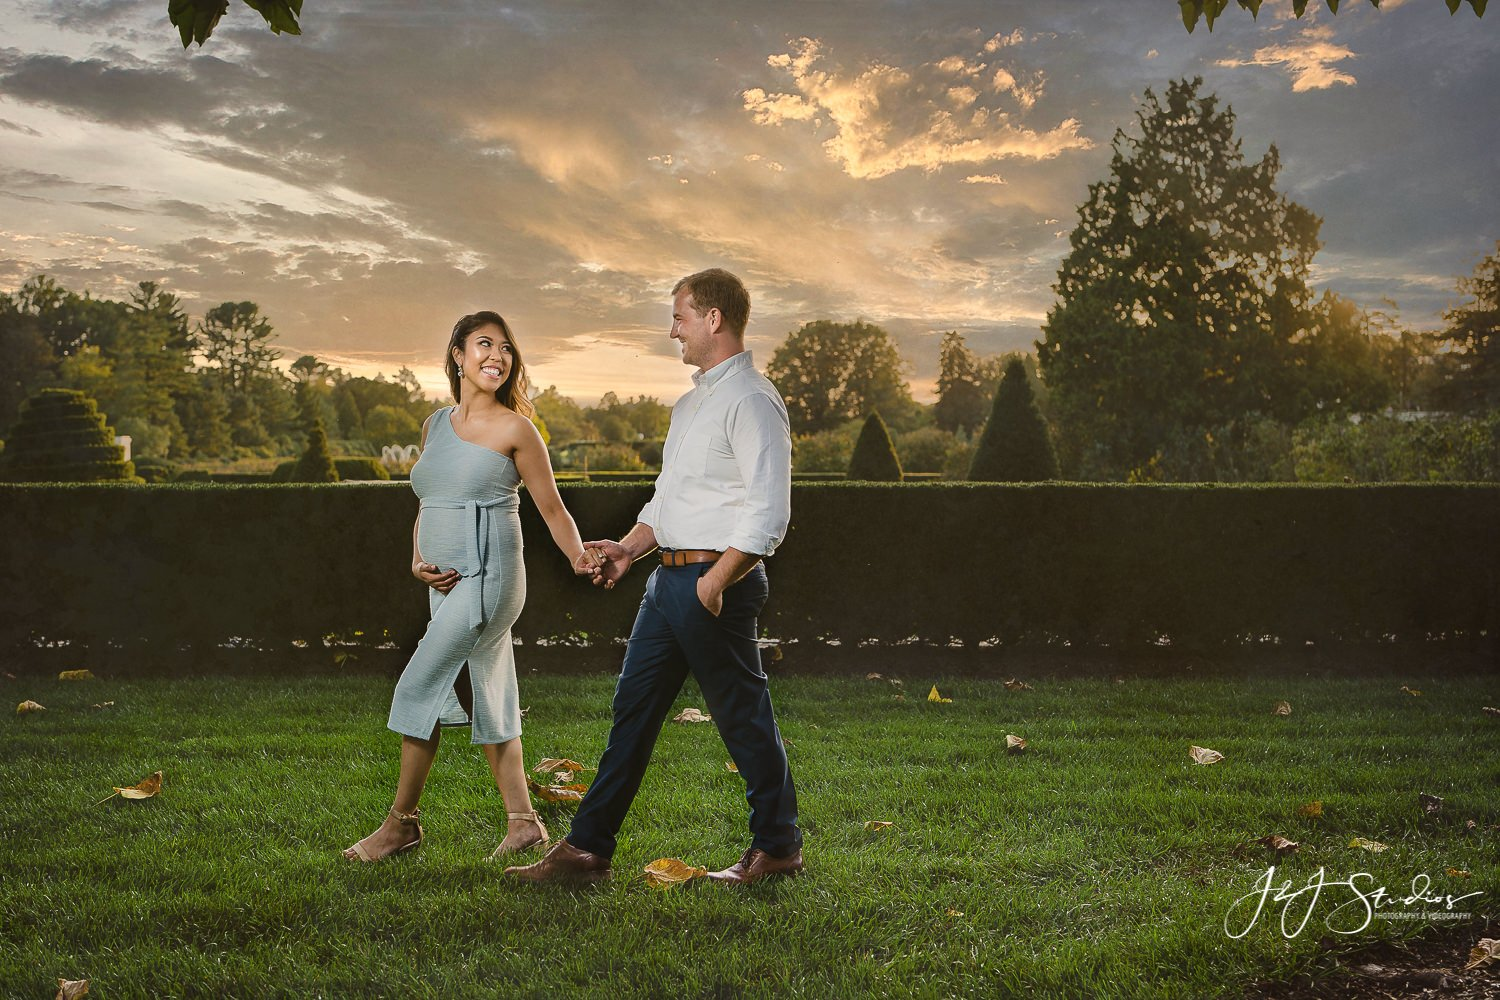 longwood gardens maternity shoot